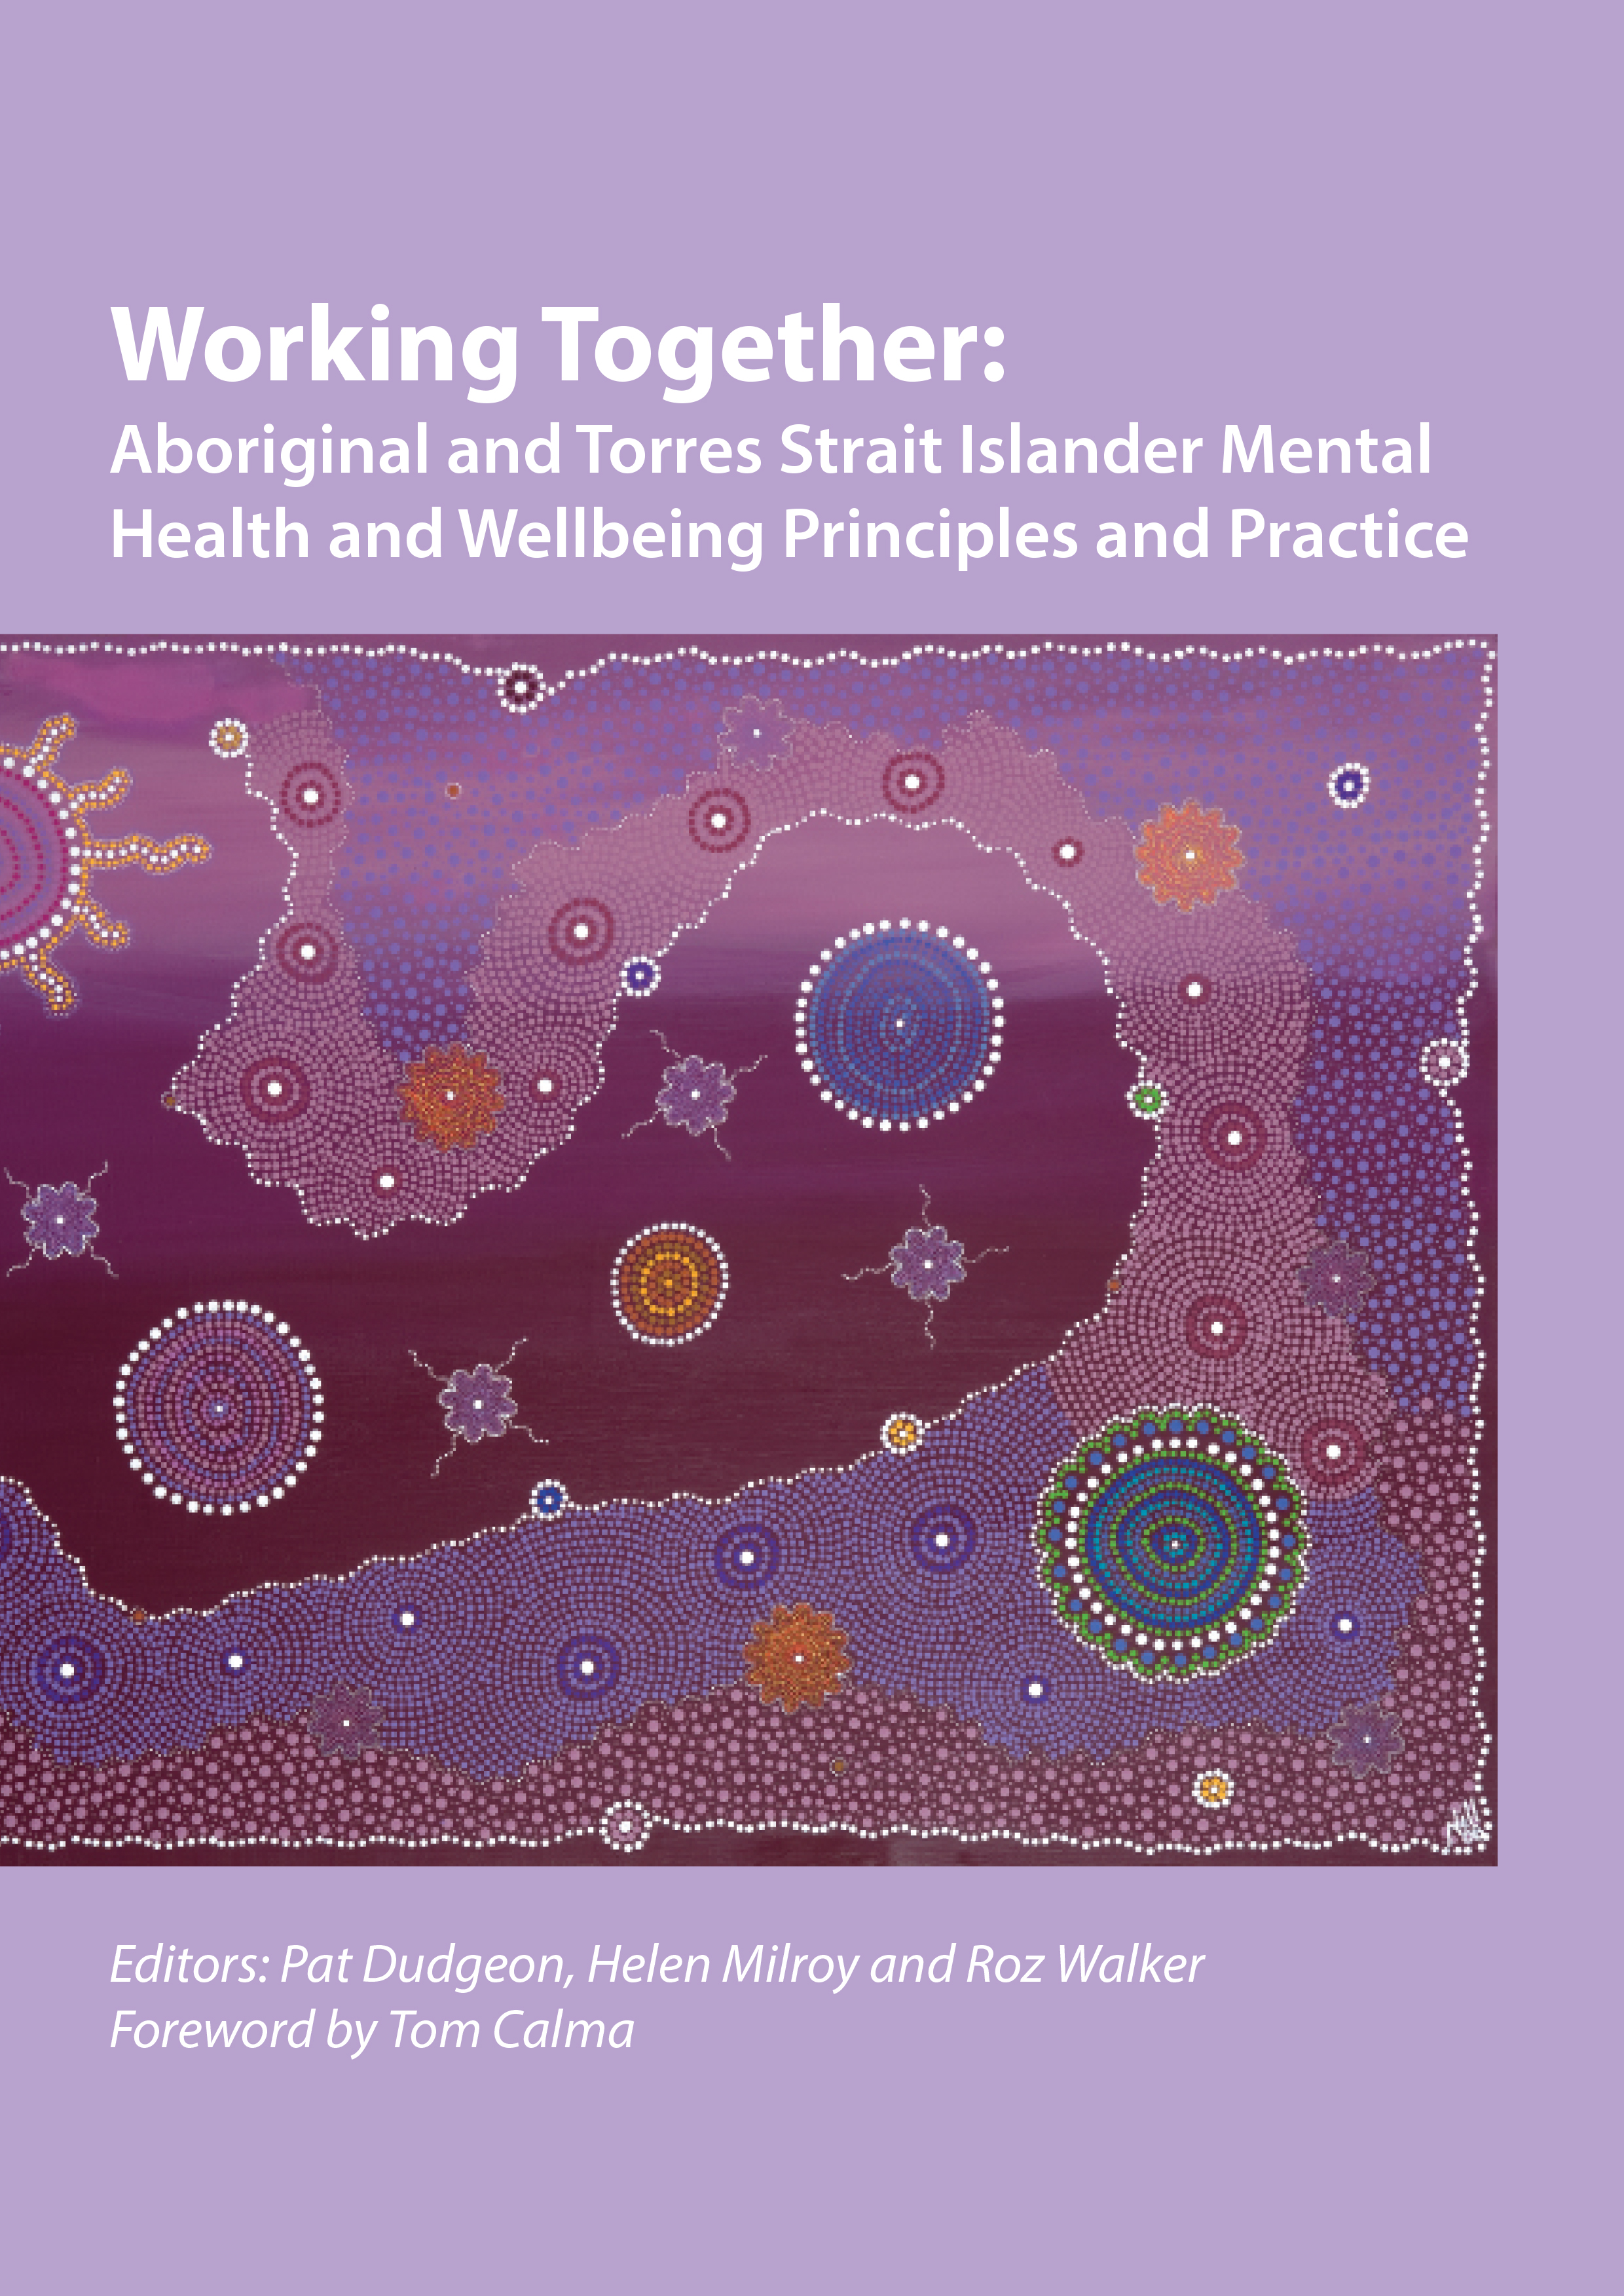 Working Together: Indigenous Mental Health and Wellbeing Principles and Practice (2nd ed) - C'Wealth (2014)